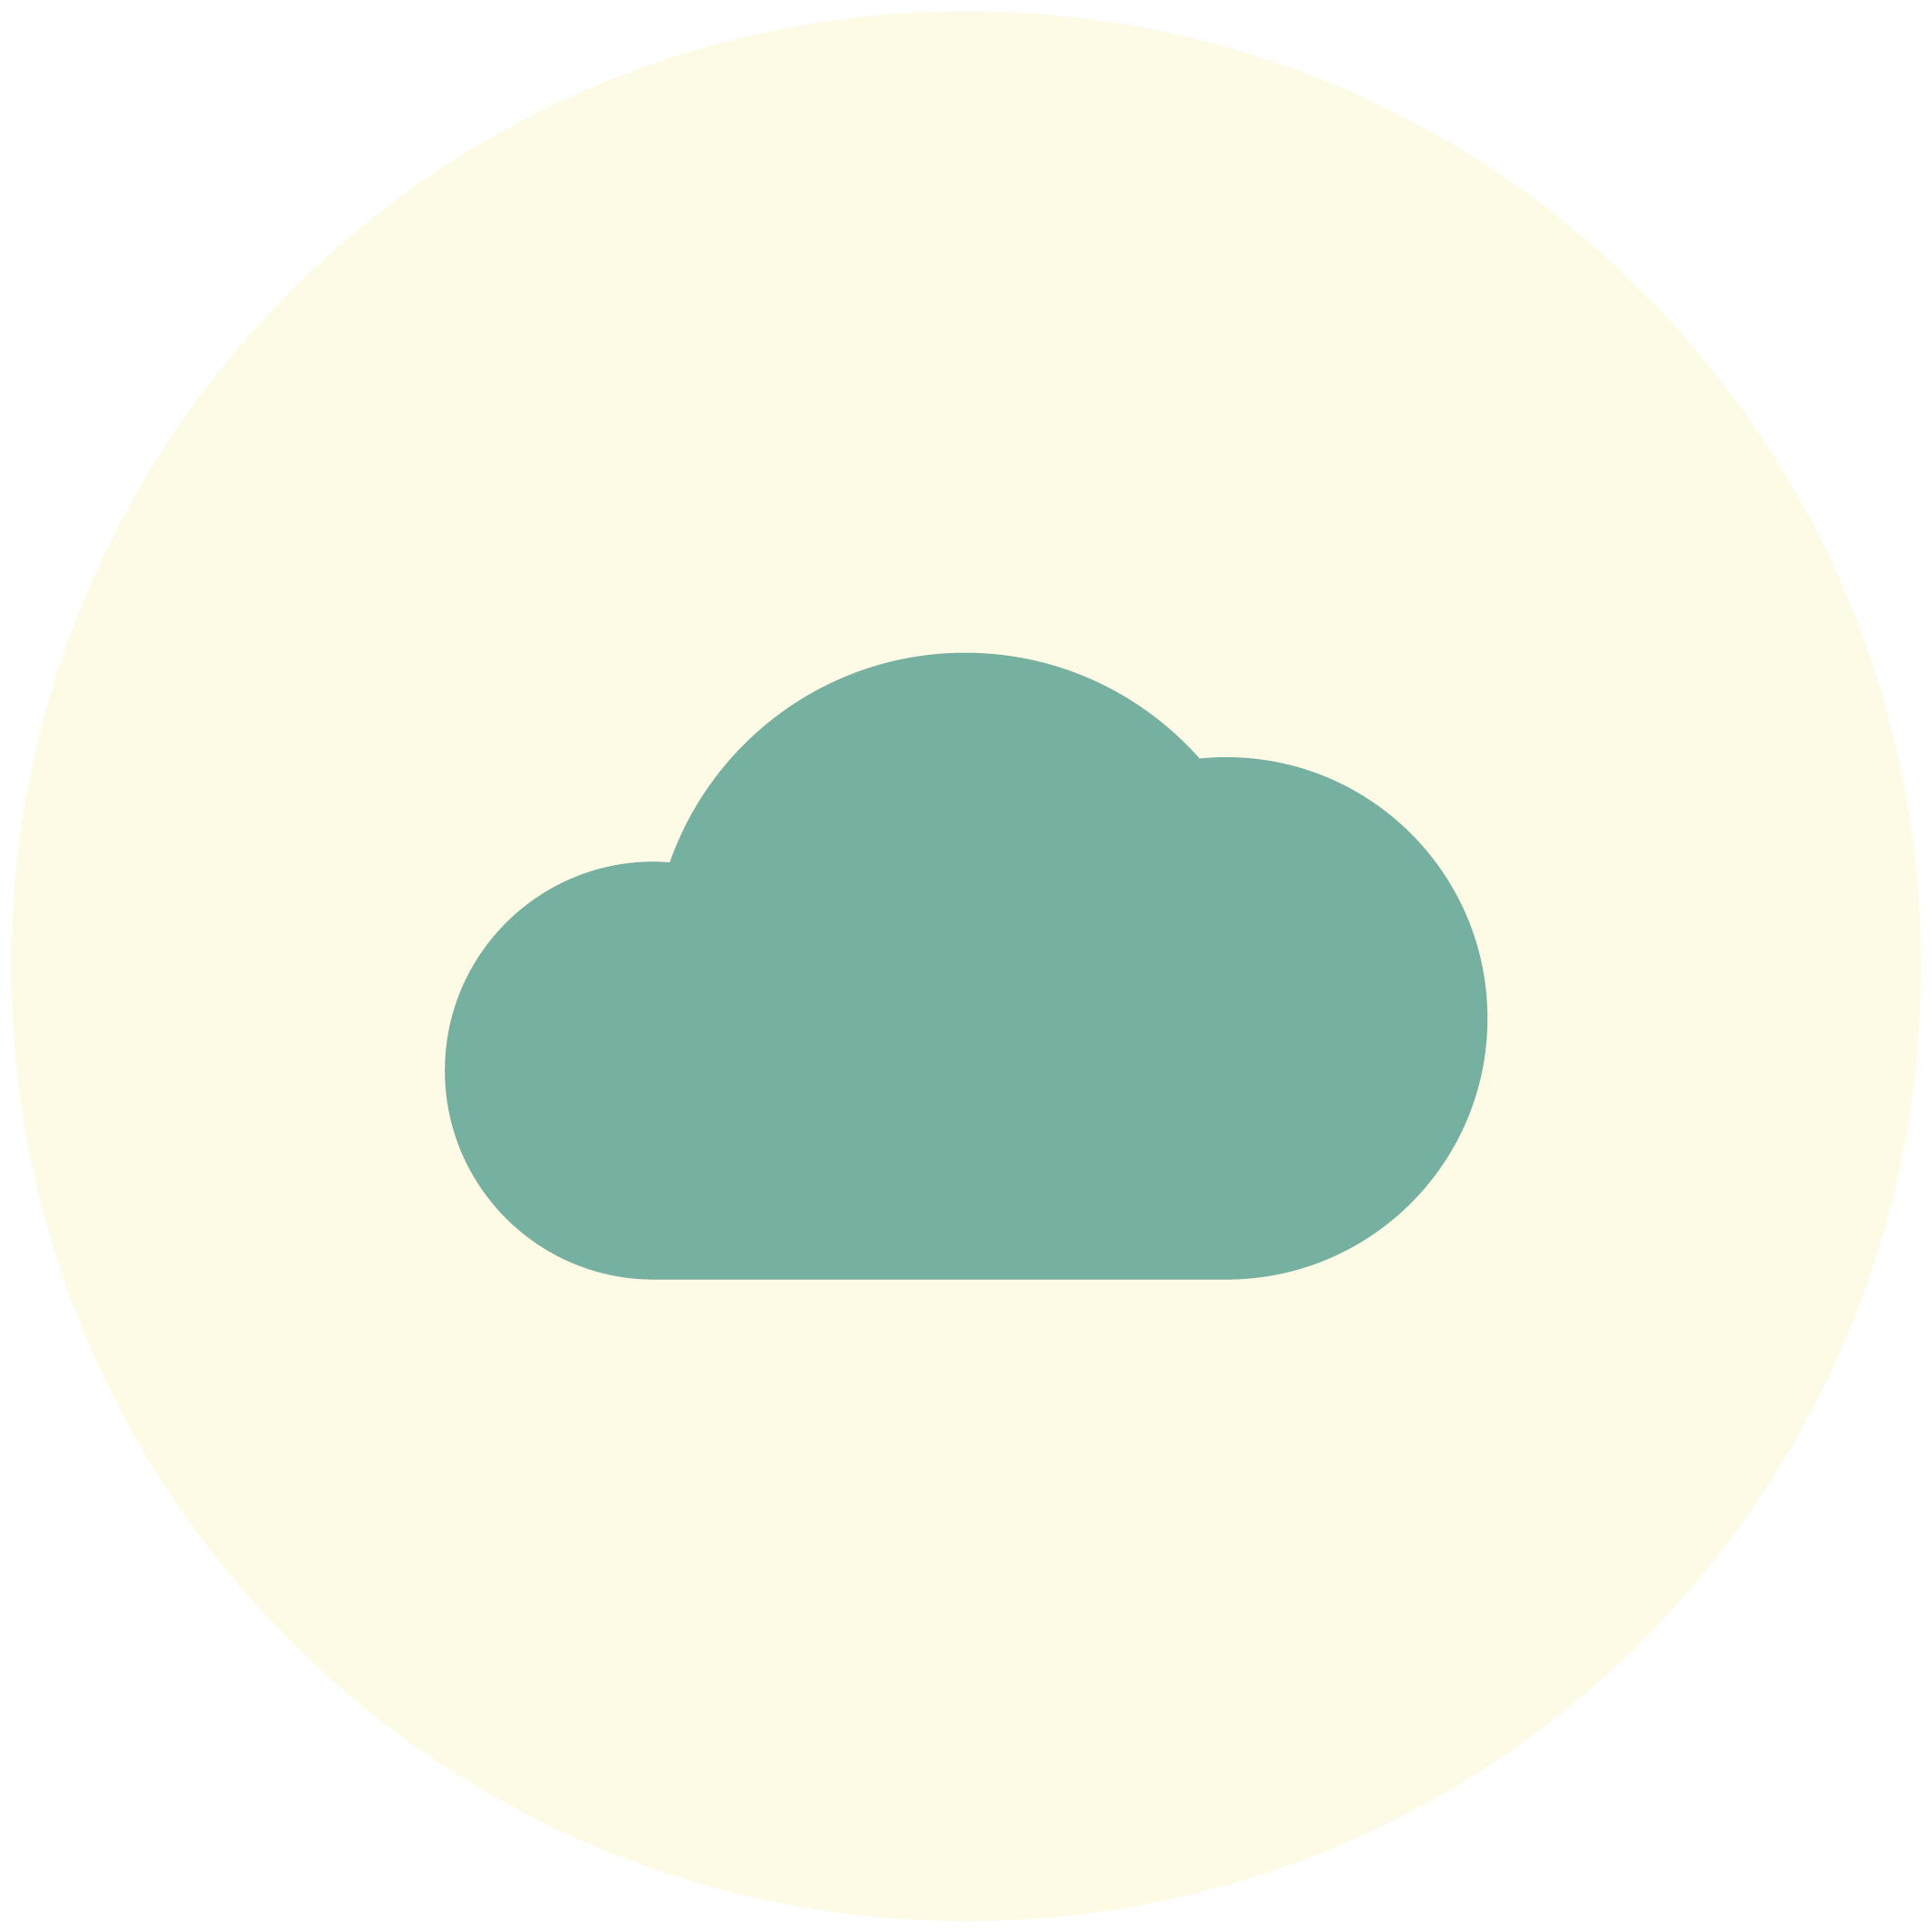 Cloudy clipart hazy. Icons for free cloud